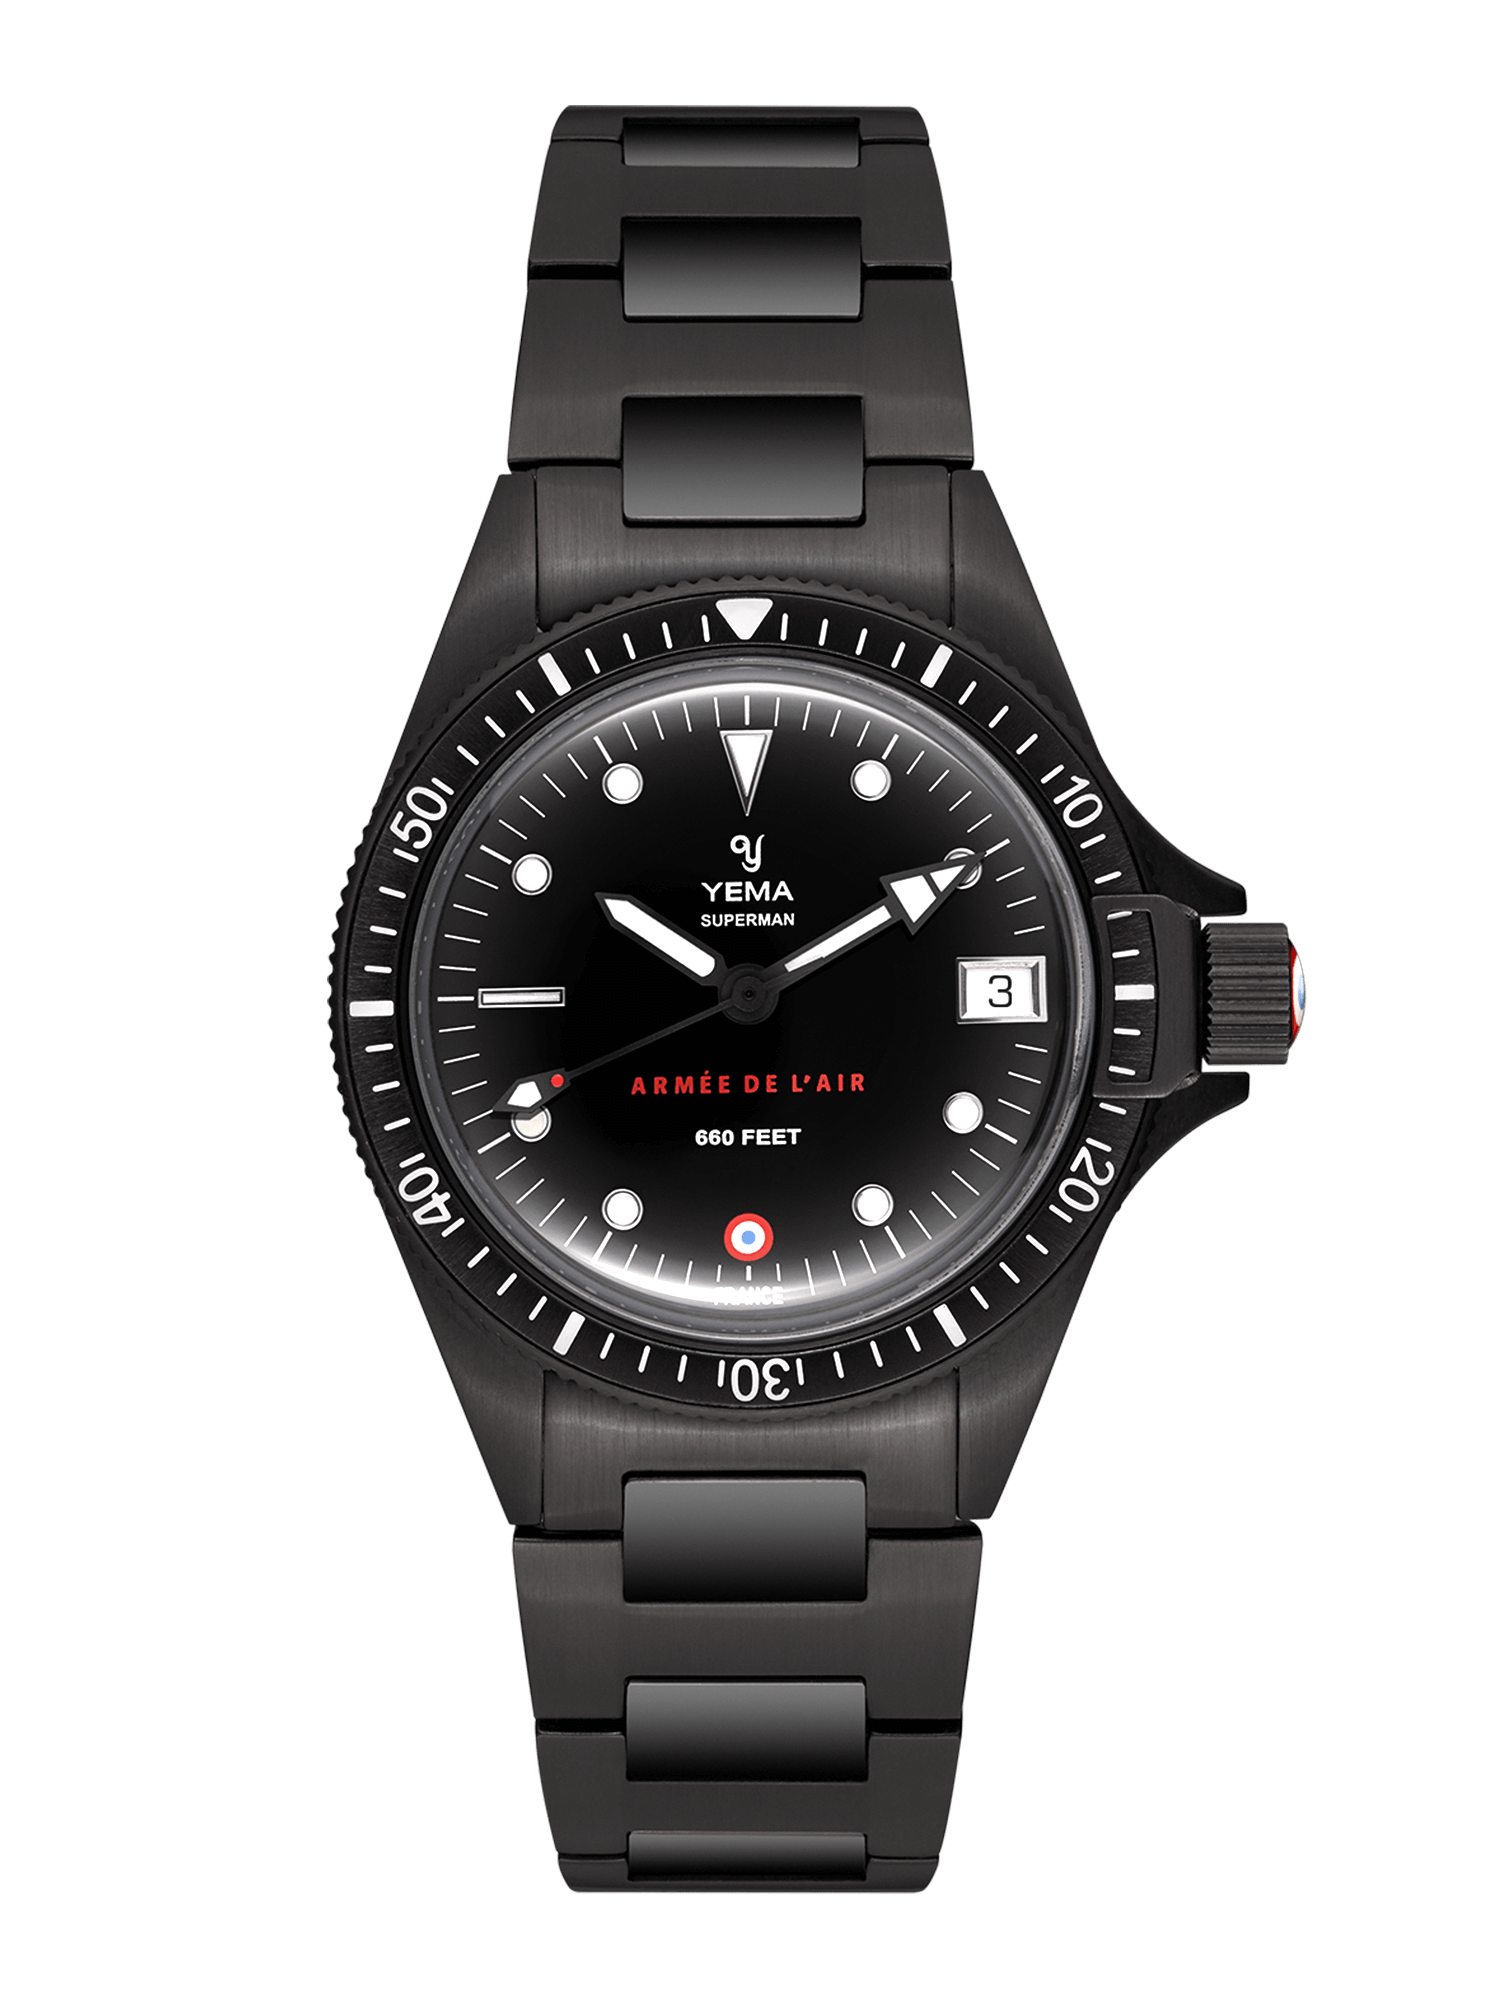 YEMA Superman French Air Force Black quartz, Matt black dial, stamped French Air Force dark red logo, Stamped French Air Force insignia at 6.